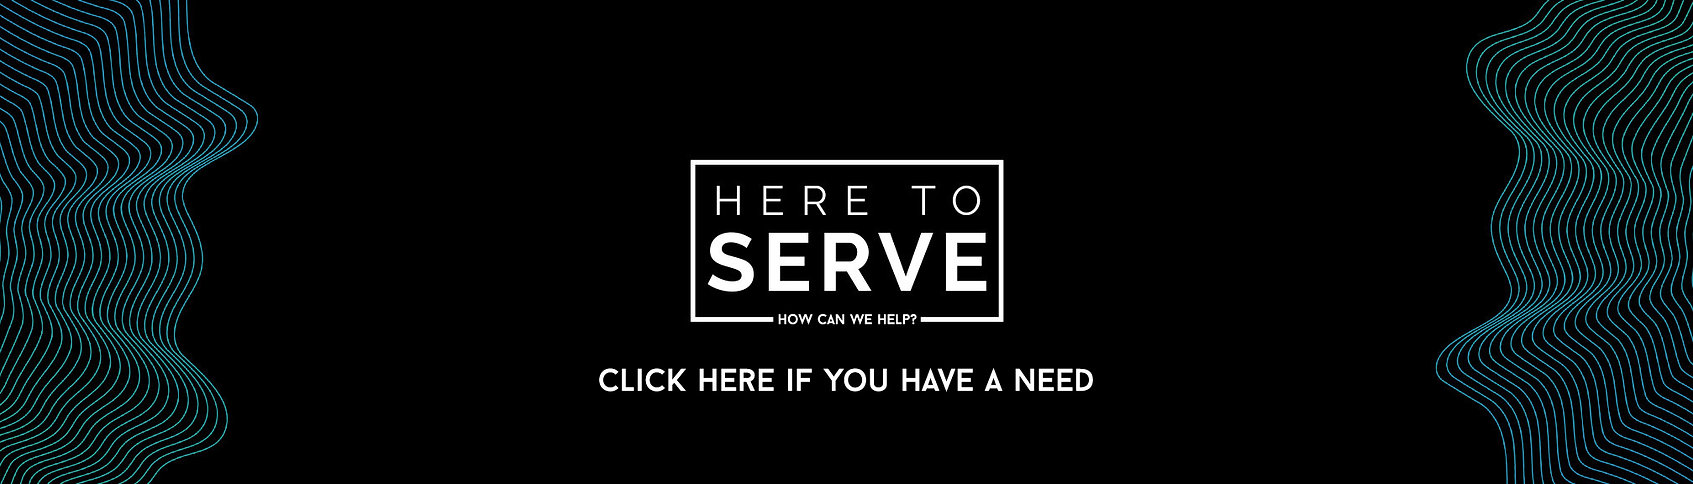 Here To Serve Banner.jpg